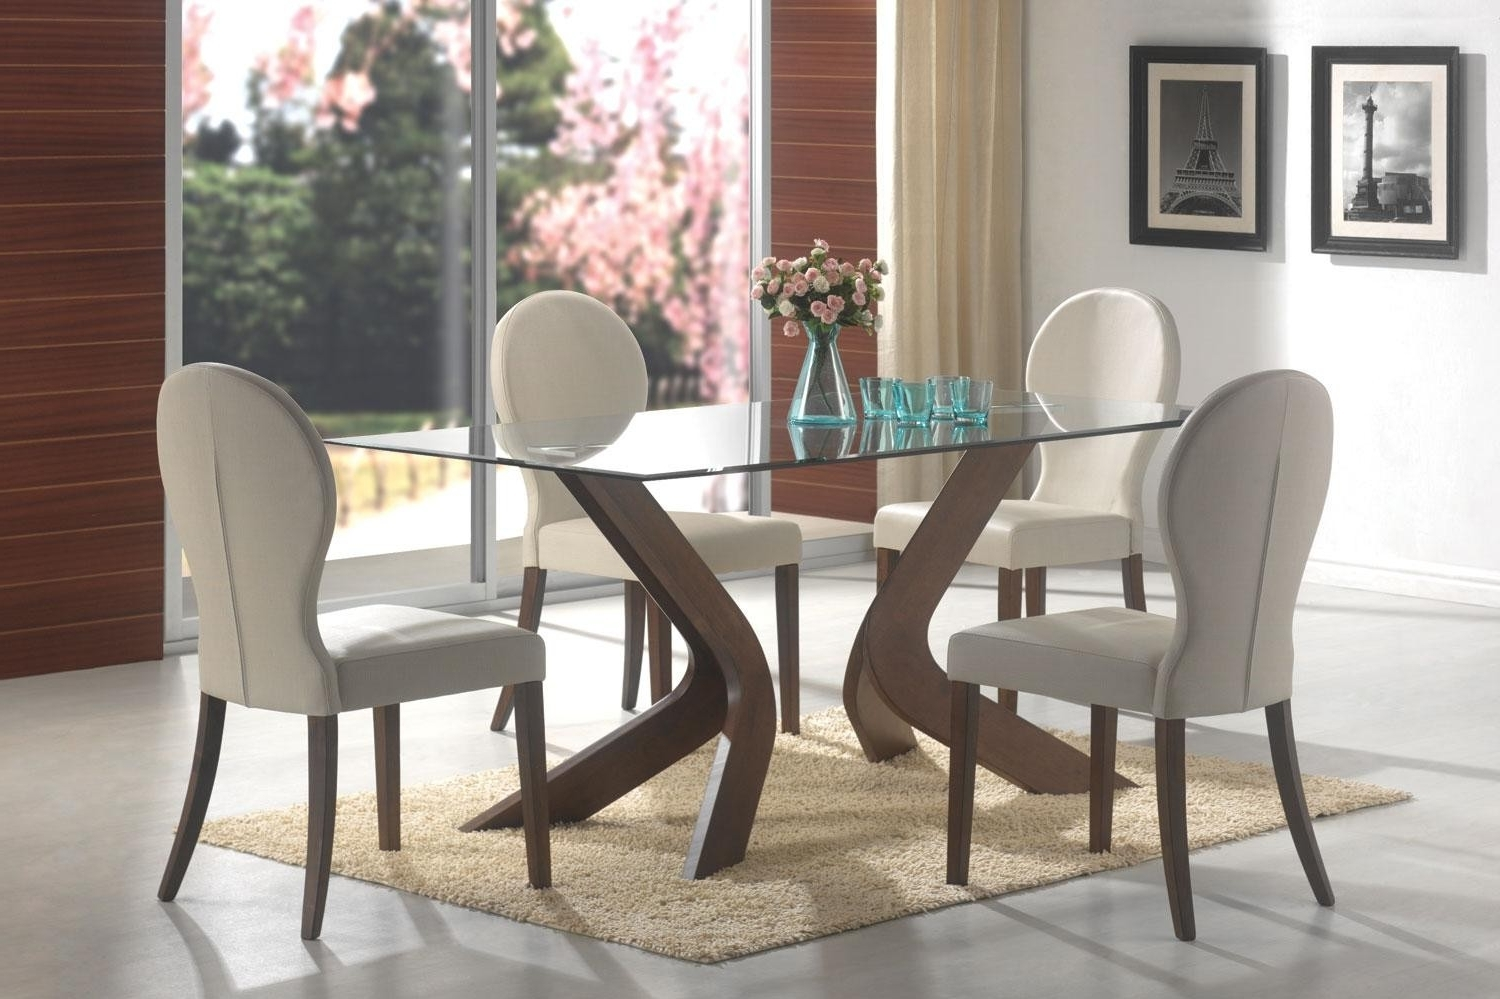 3 Essential Considerations When Choosing Glass Dining Room Table For Well Liked Glass Dining Tables Sets (View 5 of 25)